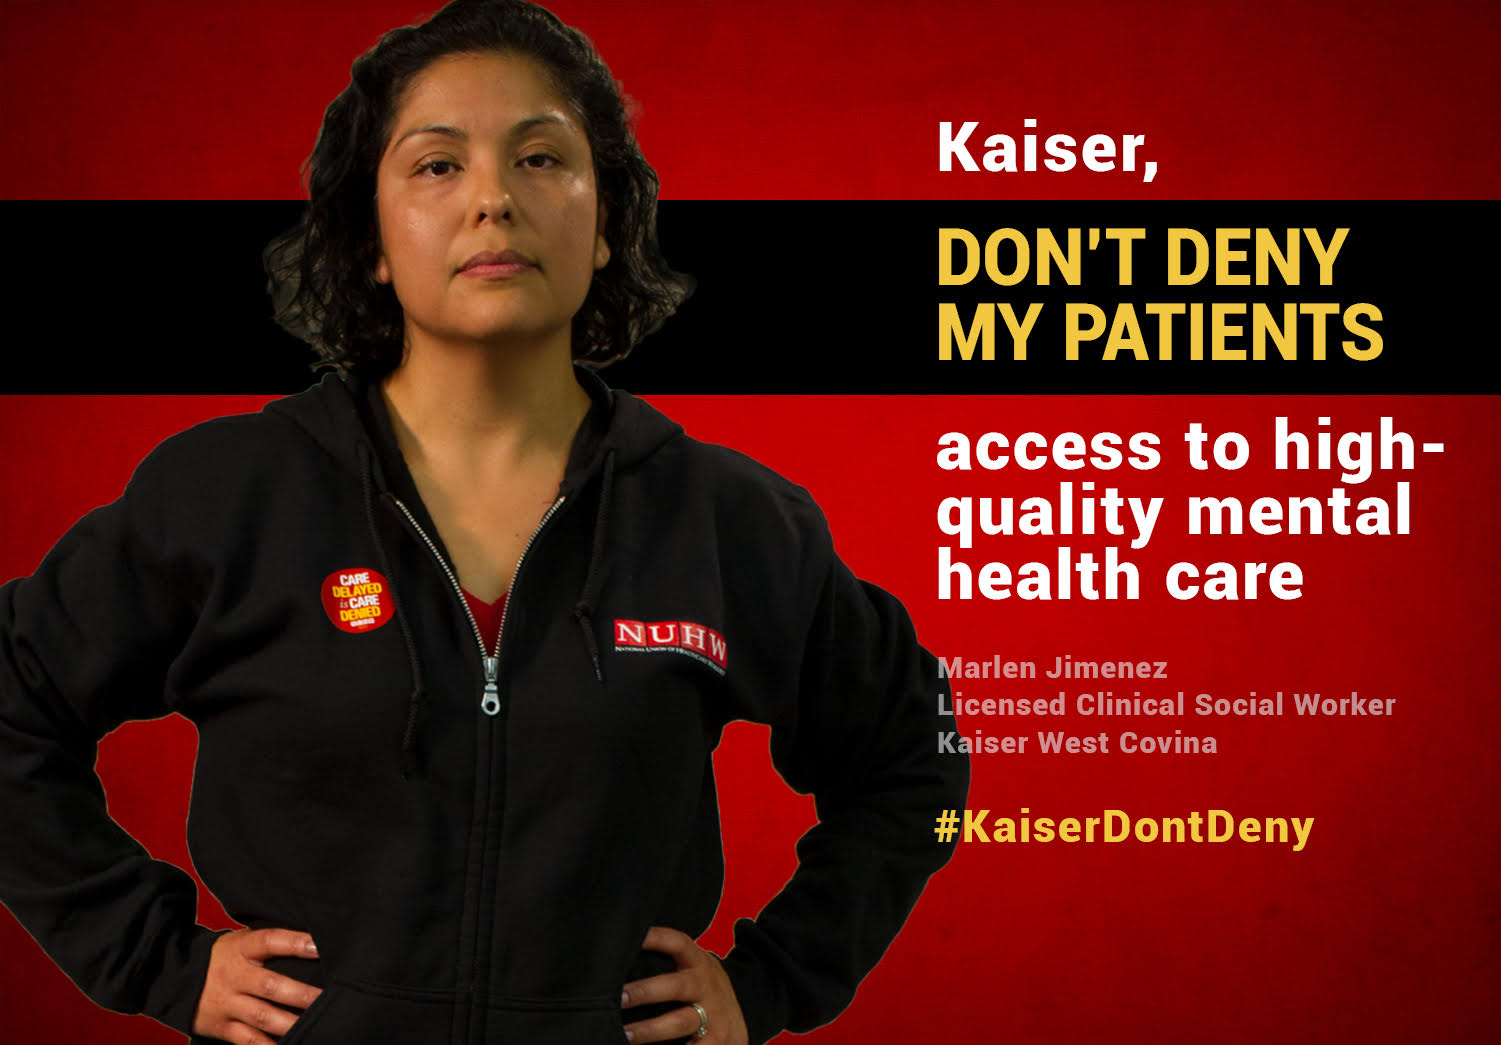 Kaiser, don't deny my patients access to high-quality mental health care. -- Marlen Jimenez, Licensed Clinical Social Worker, Kaiser West Covina